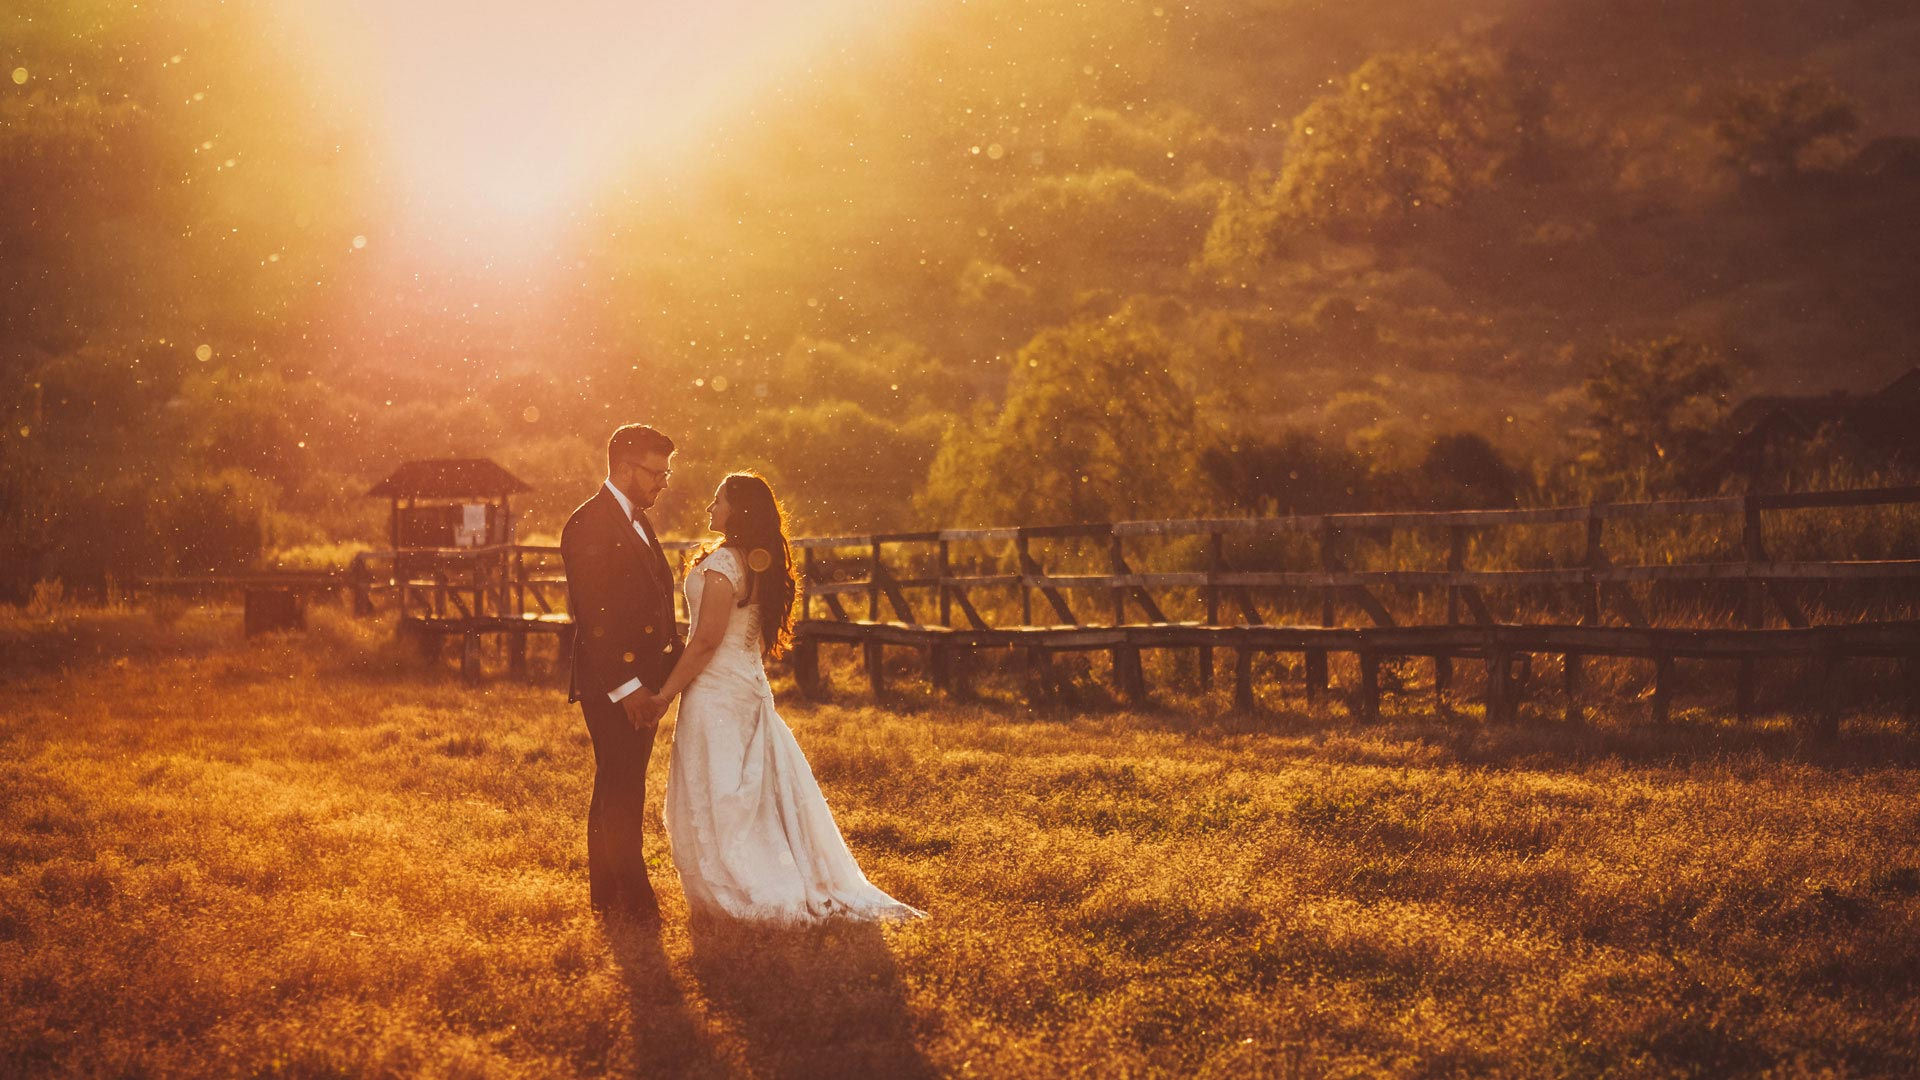 contre jour wedding photo